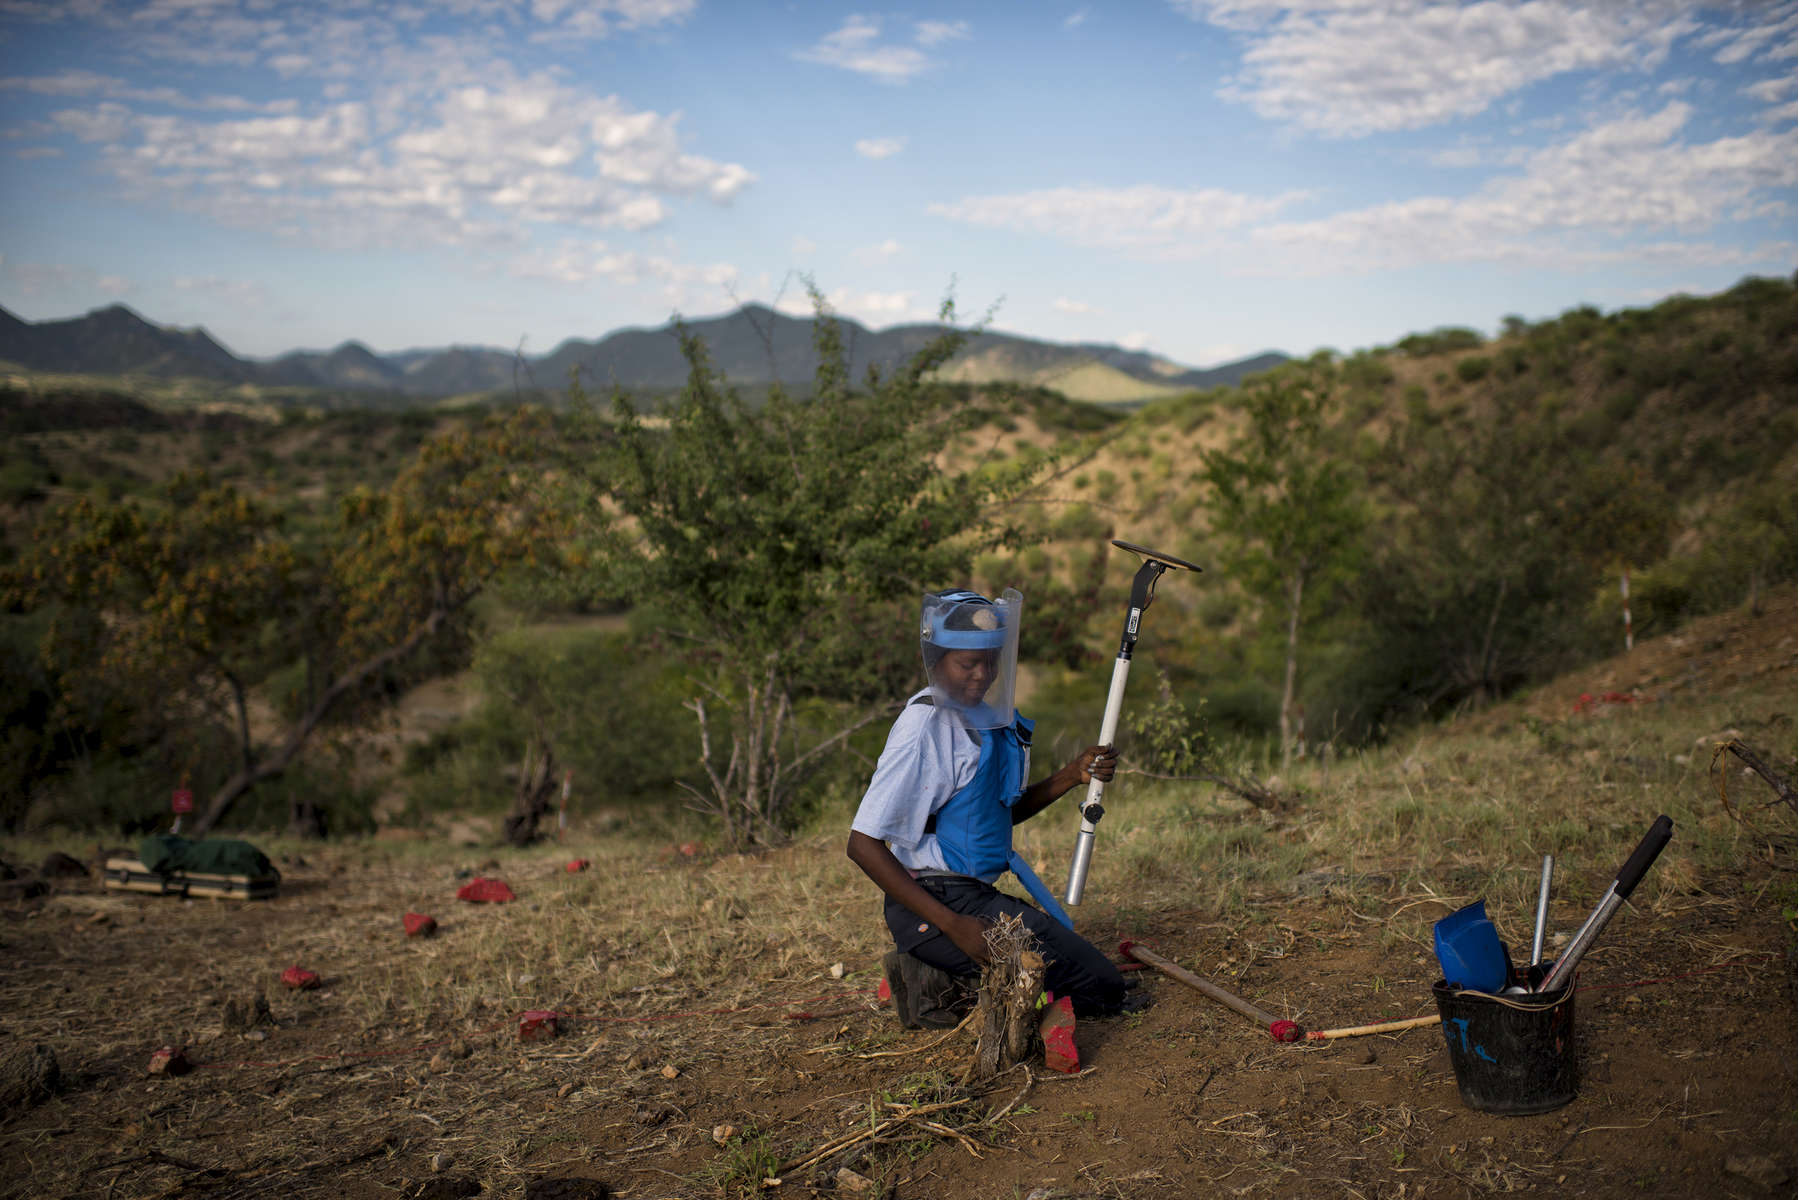 May 3, 2018: KANENGUERERE, ANGOLA - HALO deminer Joana Carlos checks her lane for anti-personnel mines in Kanenguerere.  The area was mined during the civil war by government forces to protect the nearby railway line, as well as various troop positions.